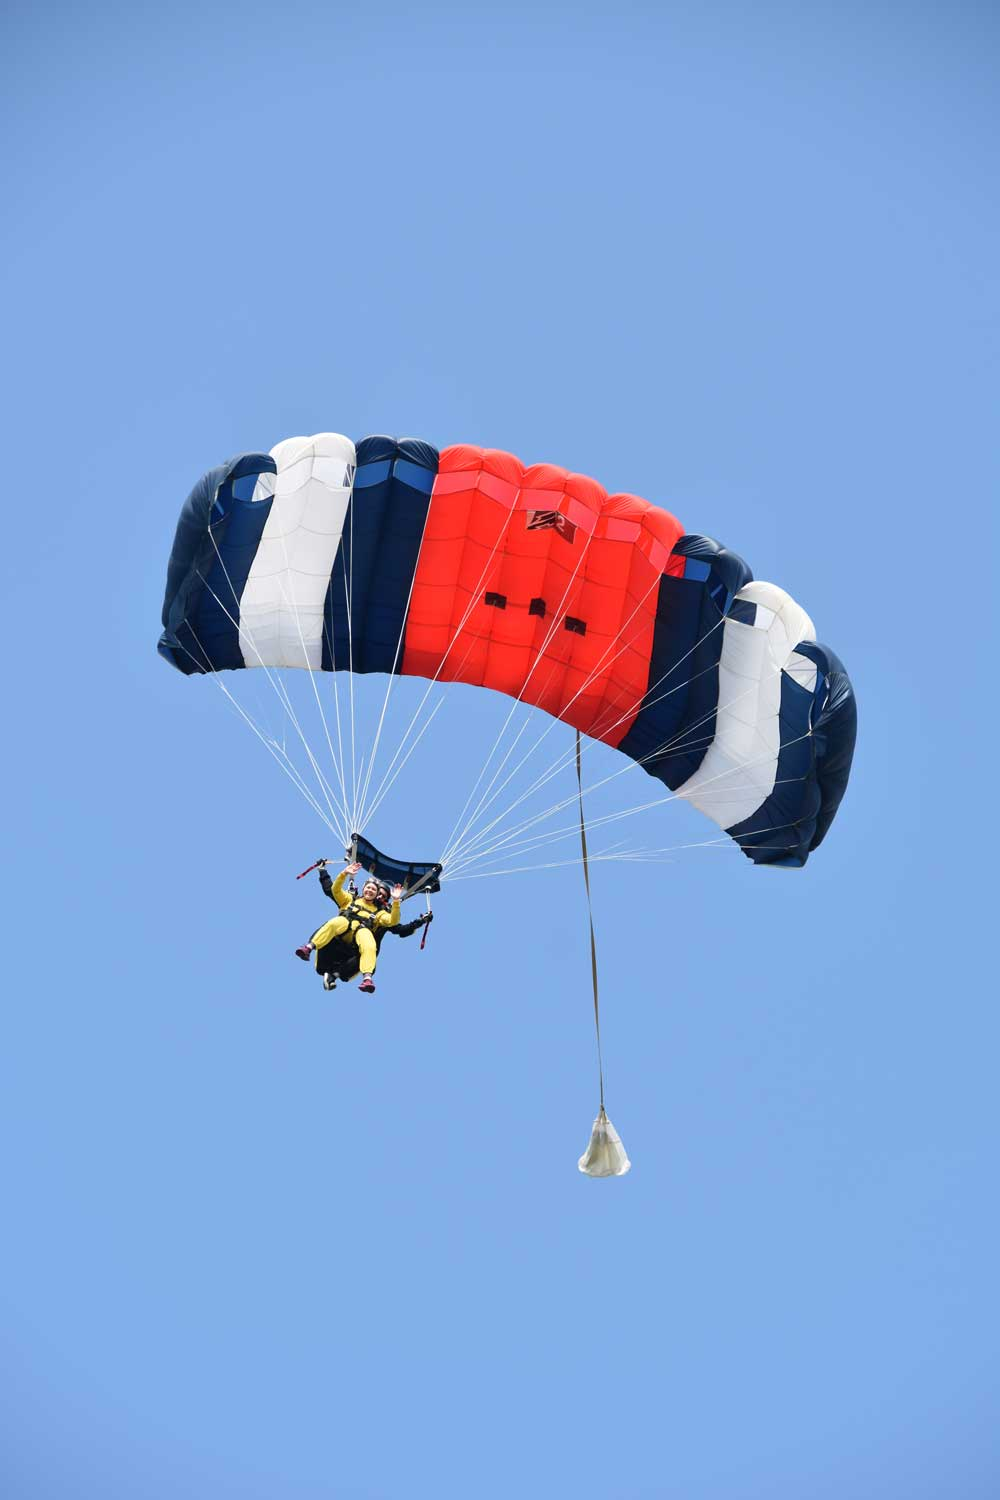 Year 11, completes skydive for charity